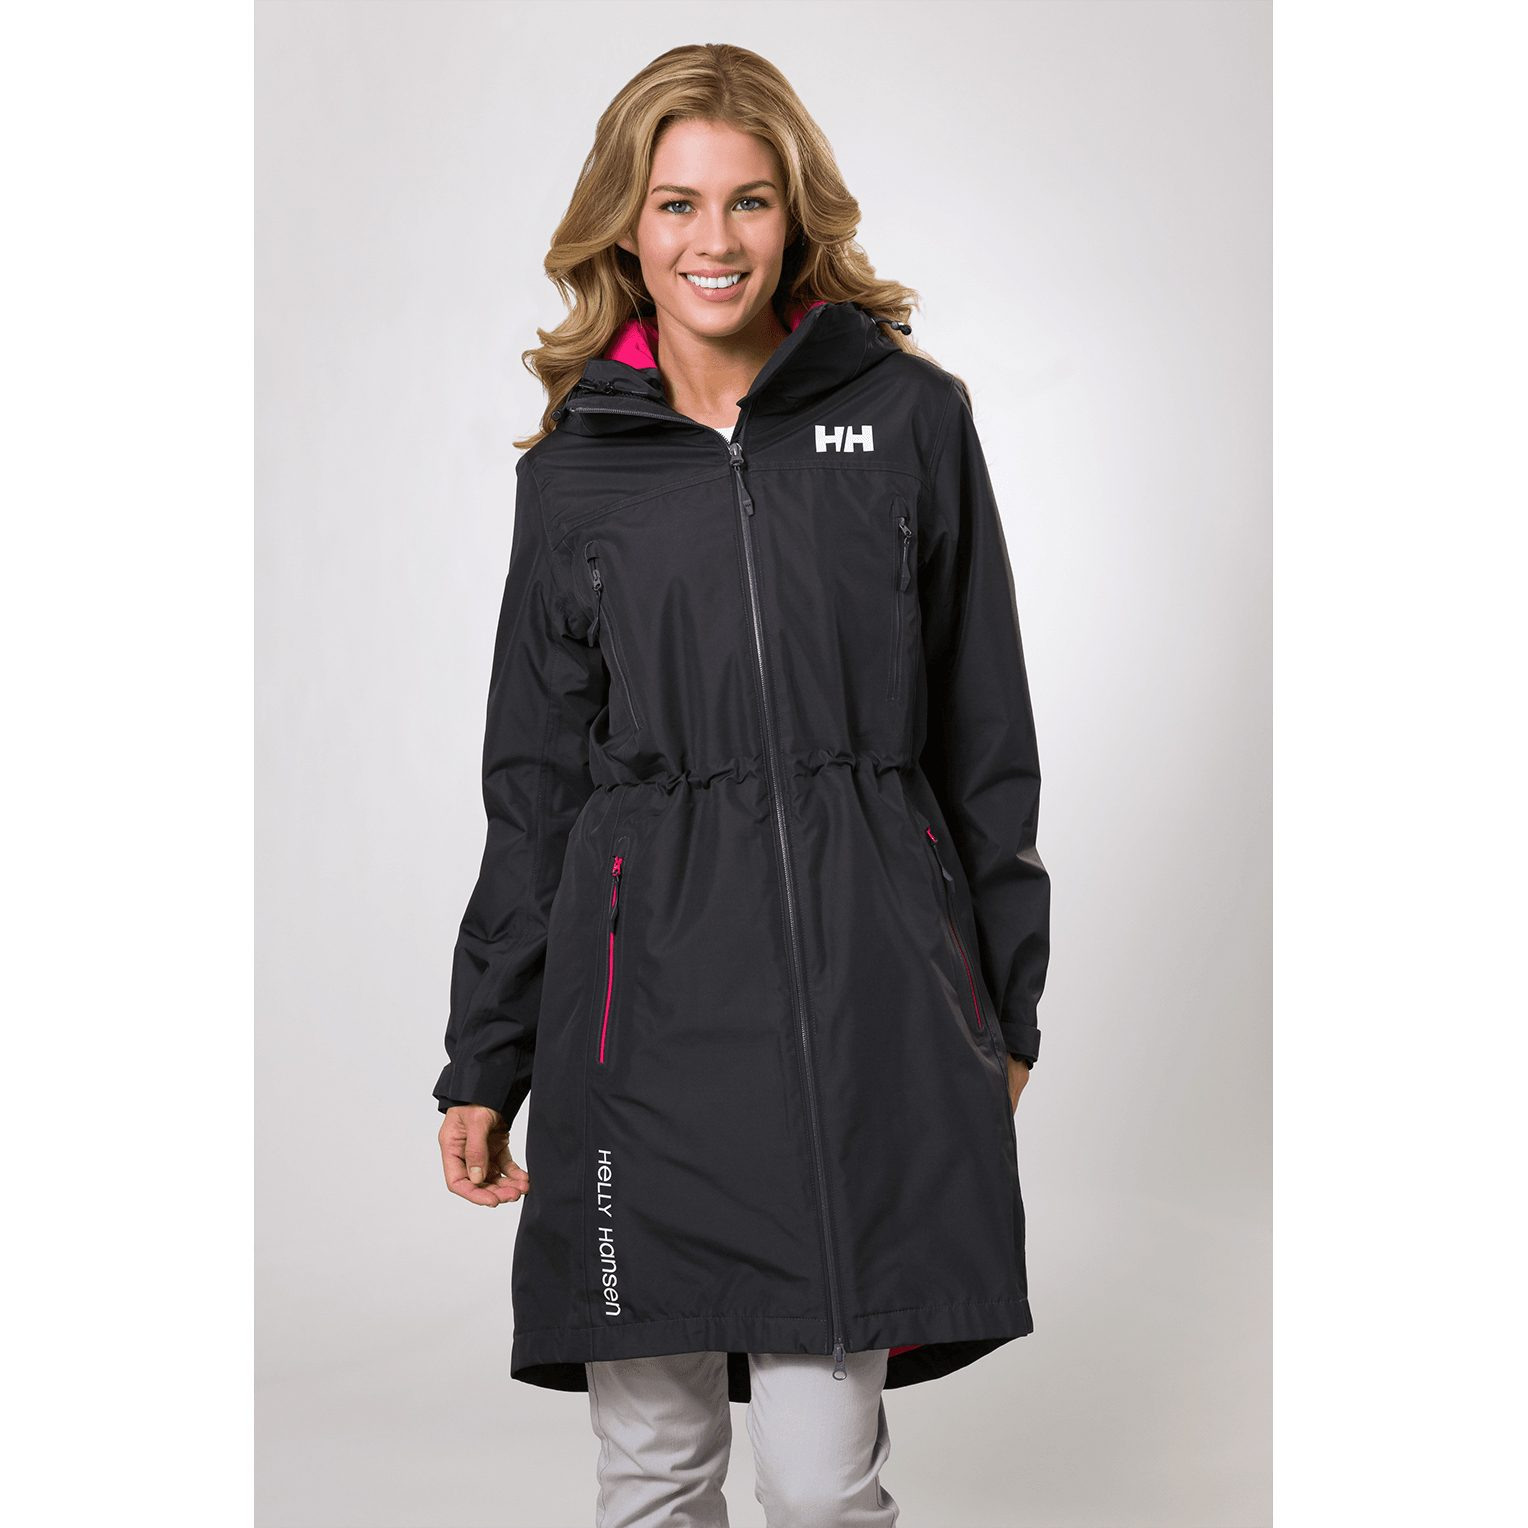 Helly Hansen Womens Rigging Hooded Insulated Waterproof Windproof Breathable Long Length Parka Coat